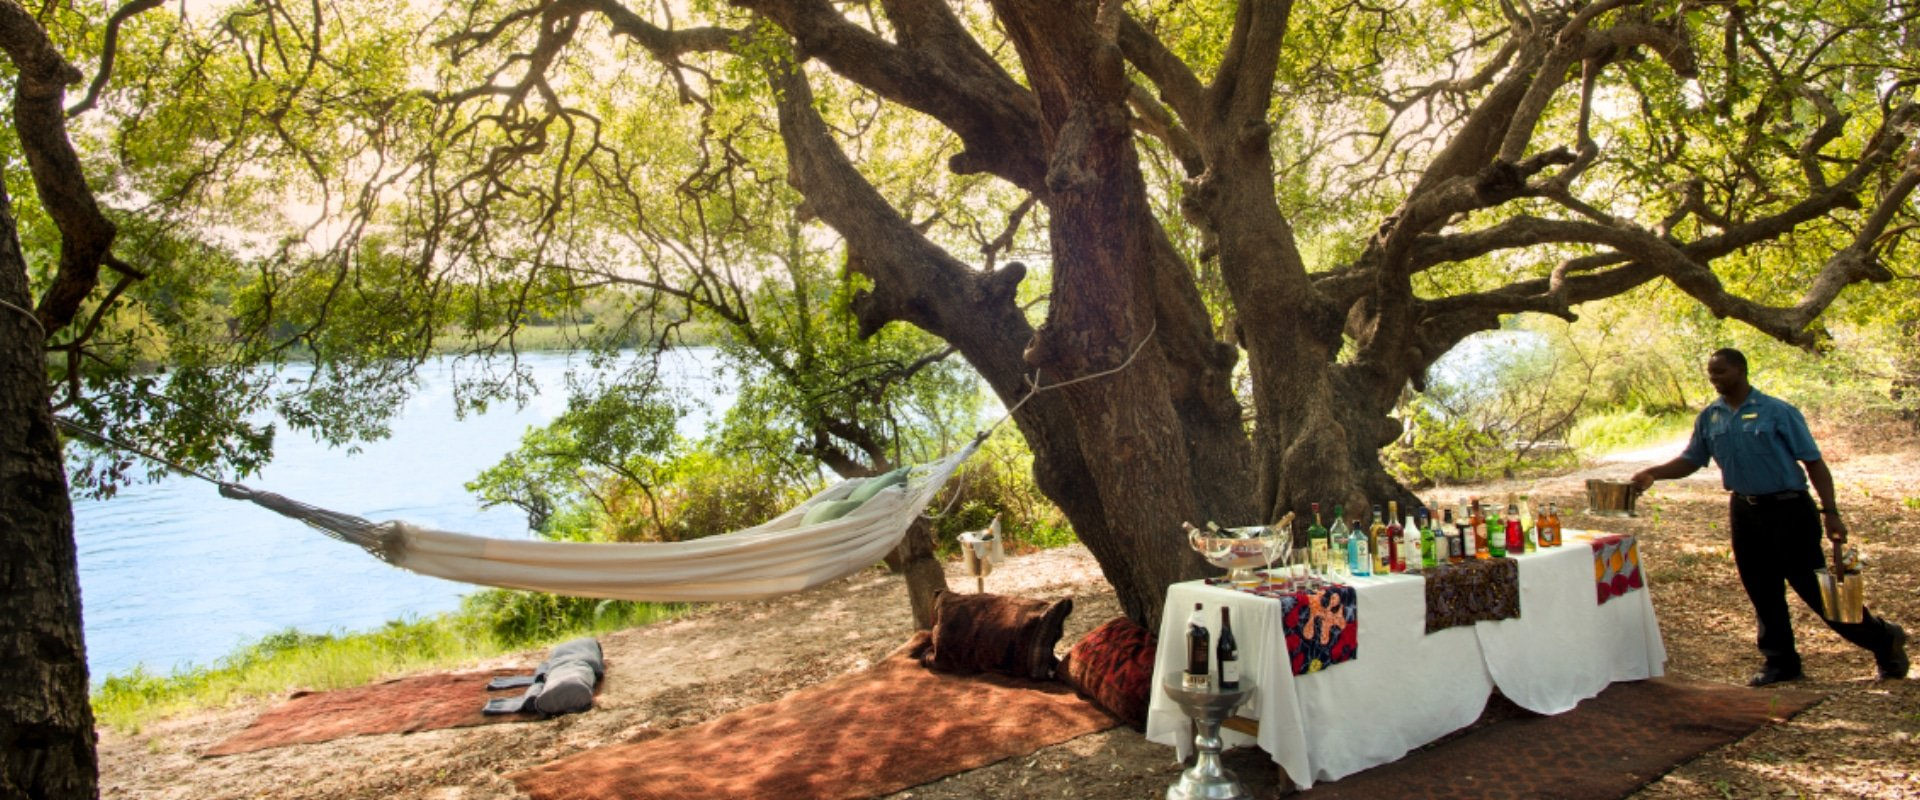 Enjoy a romantic private picnic on a lazy river day